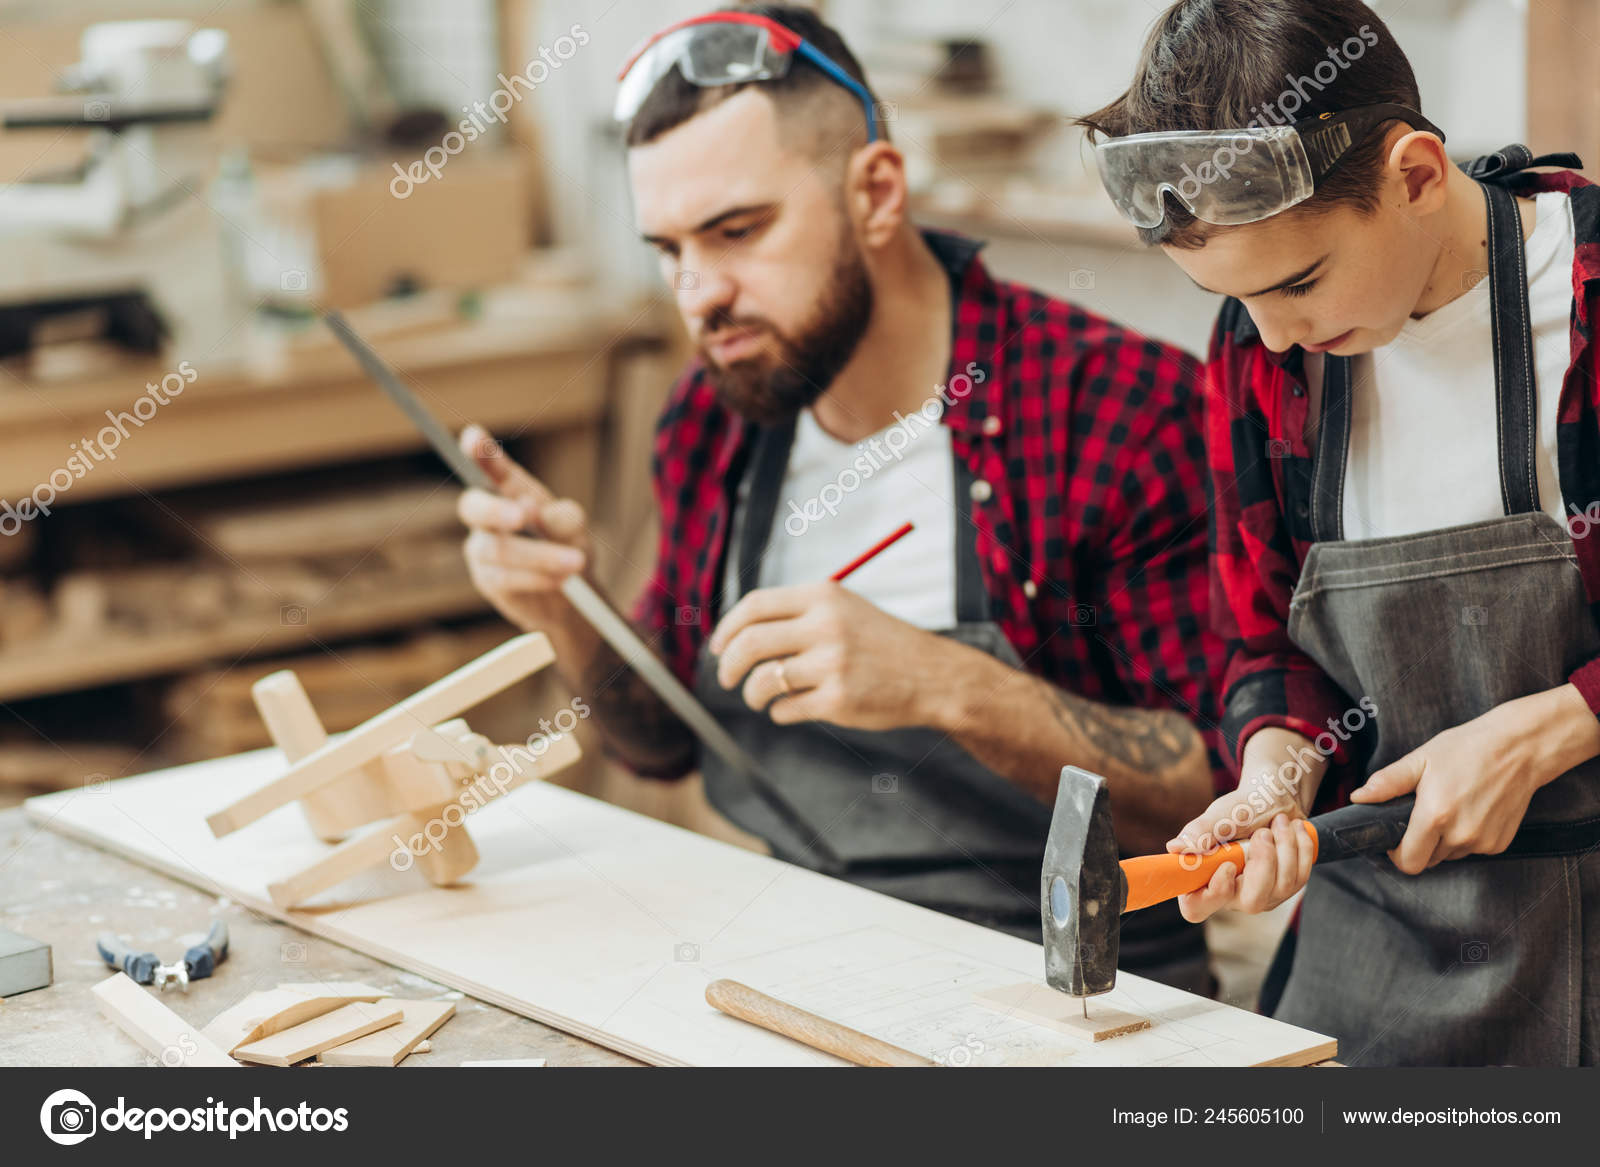 Woodwork Classes For Children And Creativity Concept Stock Photo